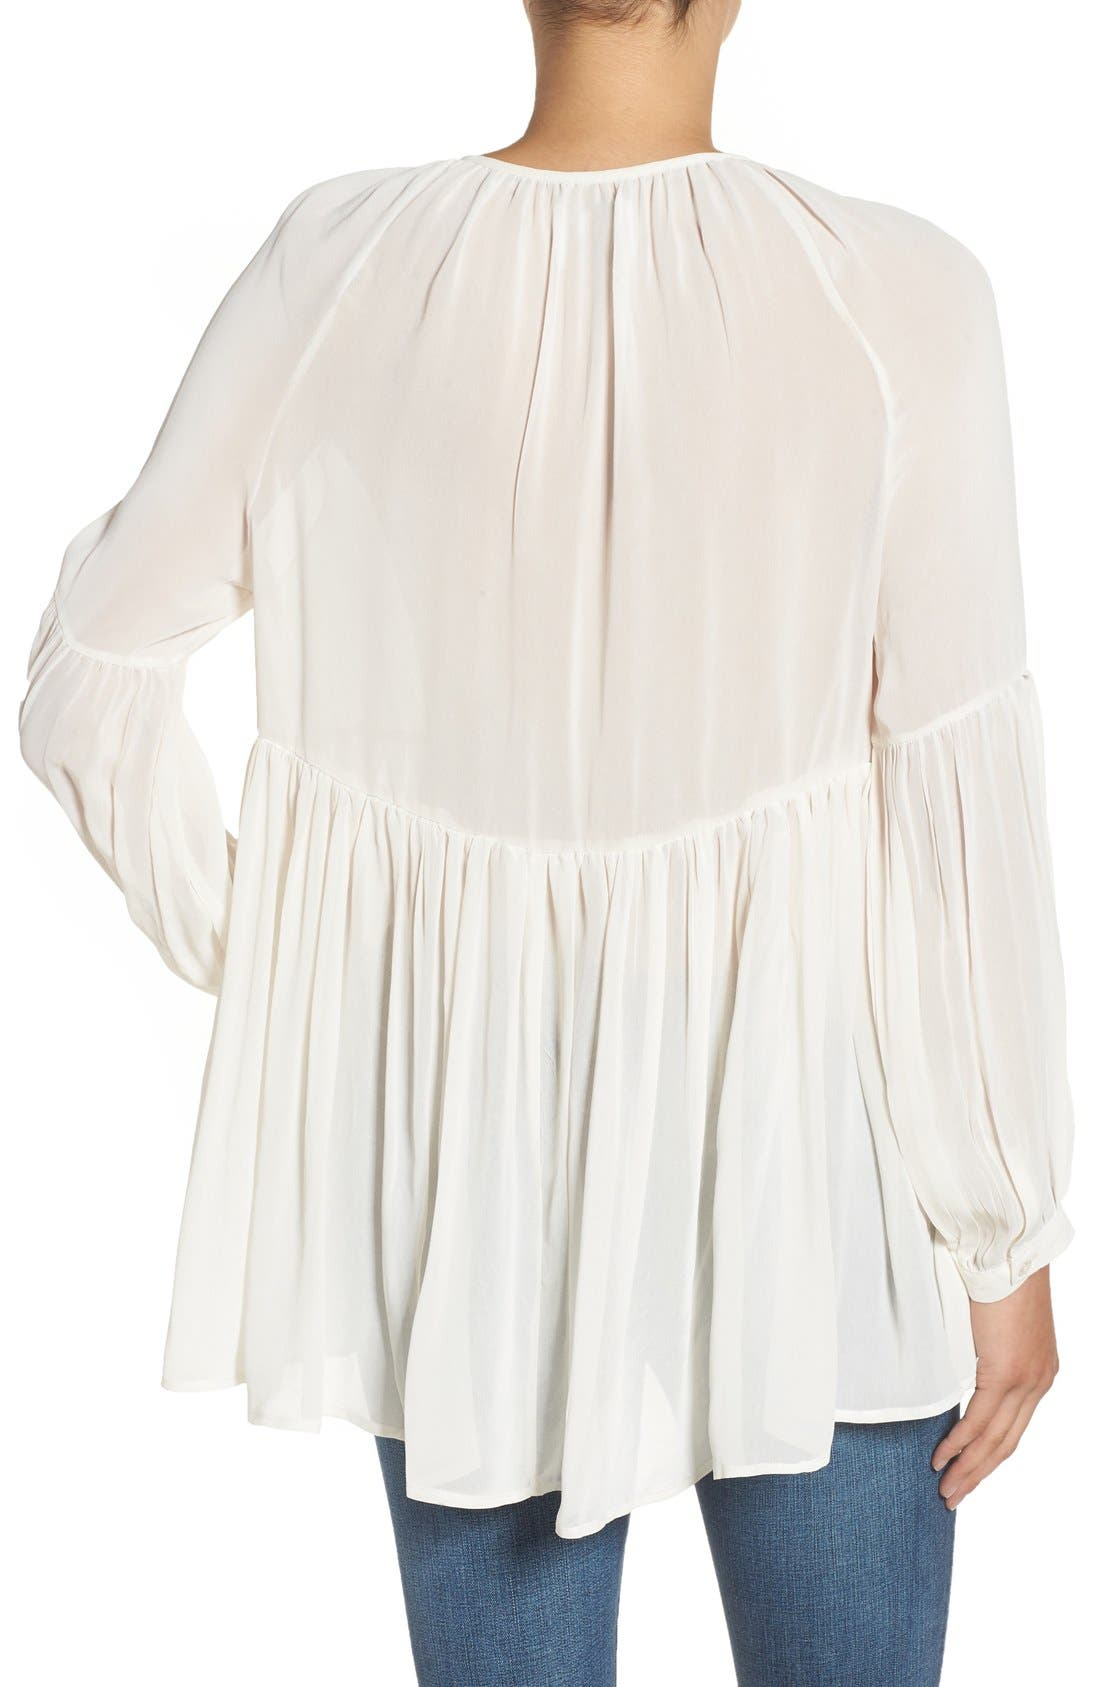 Alternate Image 2  - Sincerely Jules 'Cameron' Chiffon Blouse